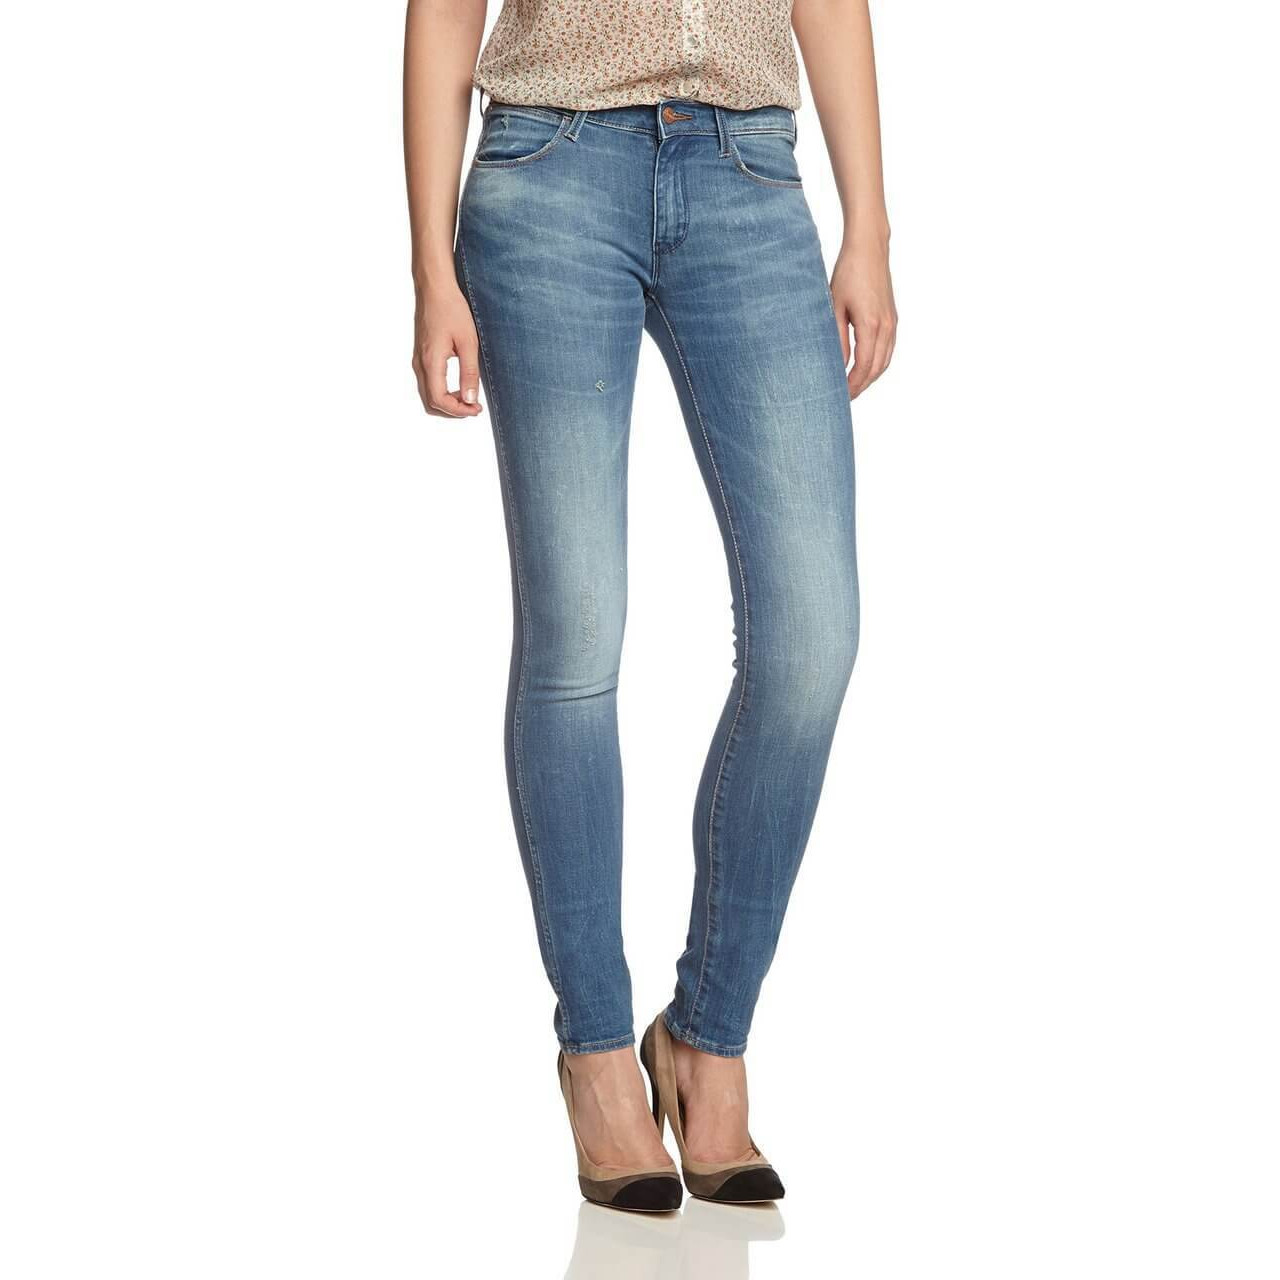 d522b08f Wrangler Corynn Skinny Stretch Jeans Deep Sea Decay Image. Double tap to  zoom